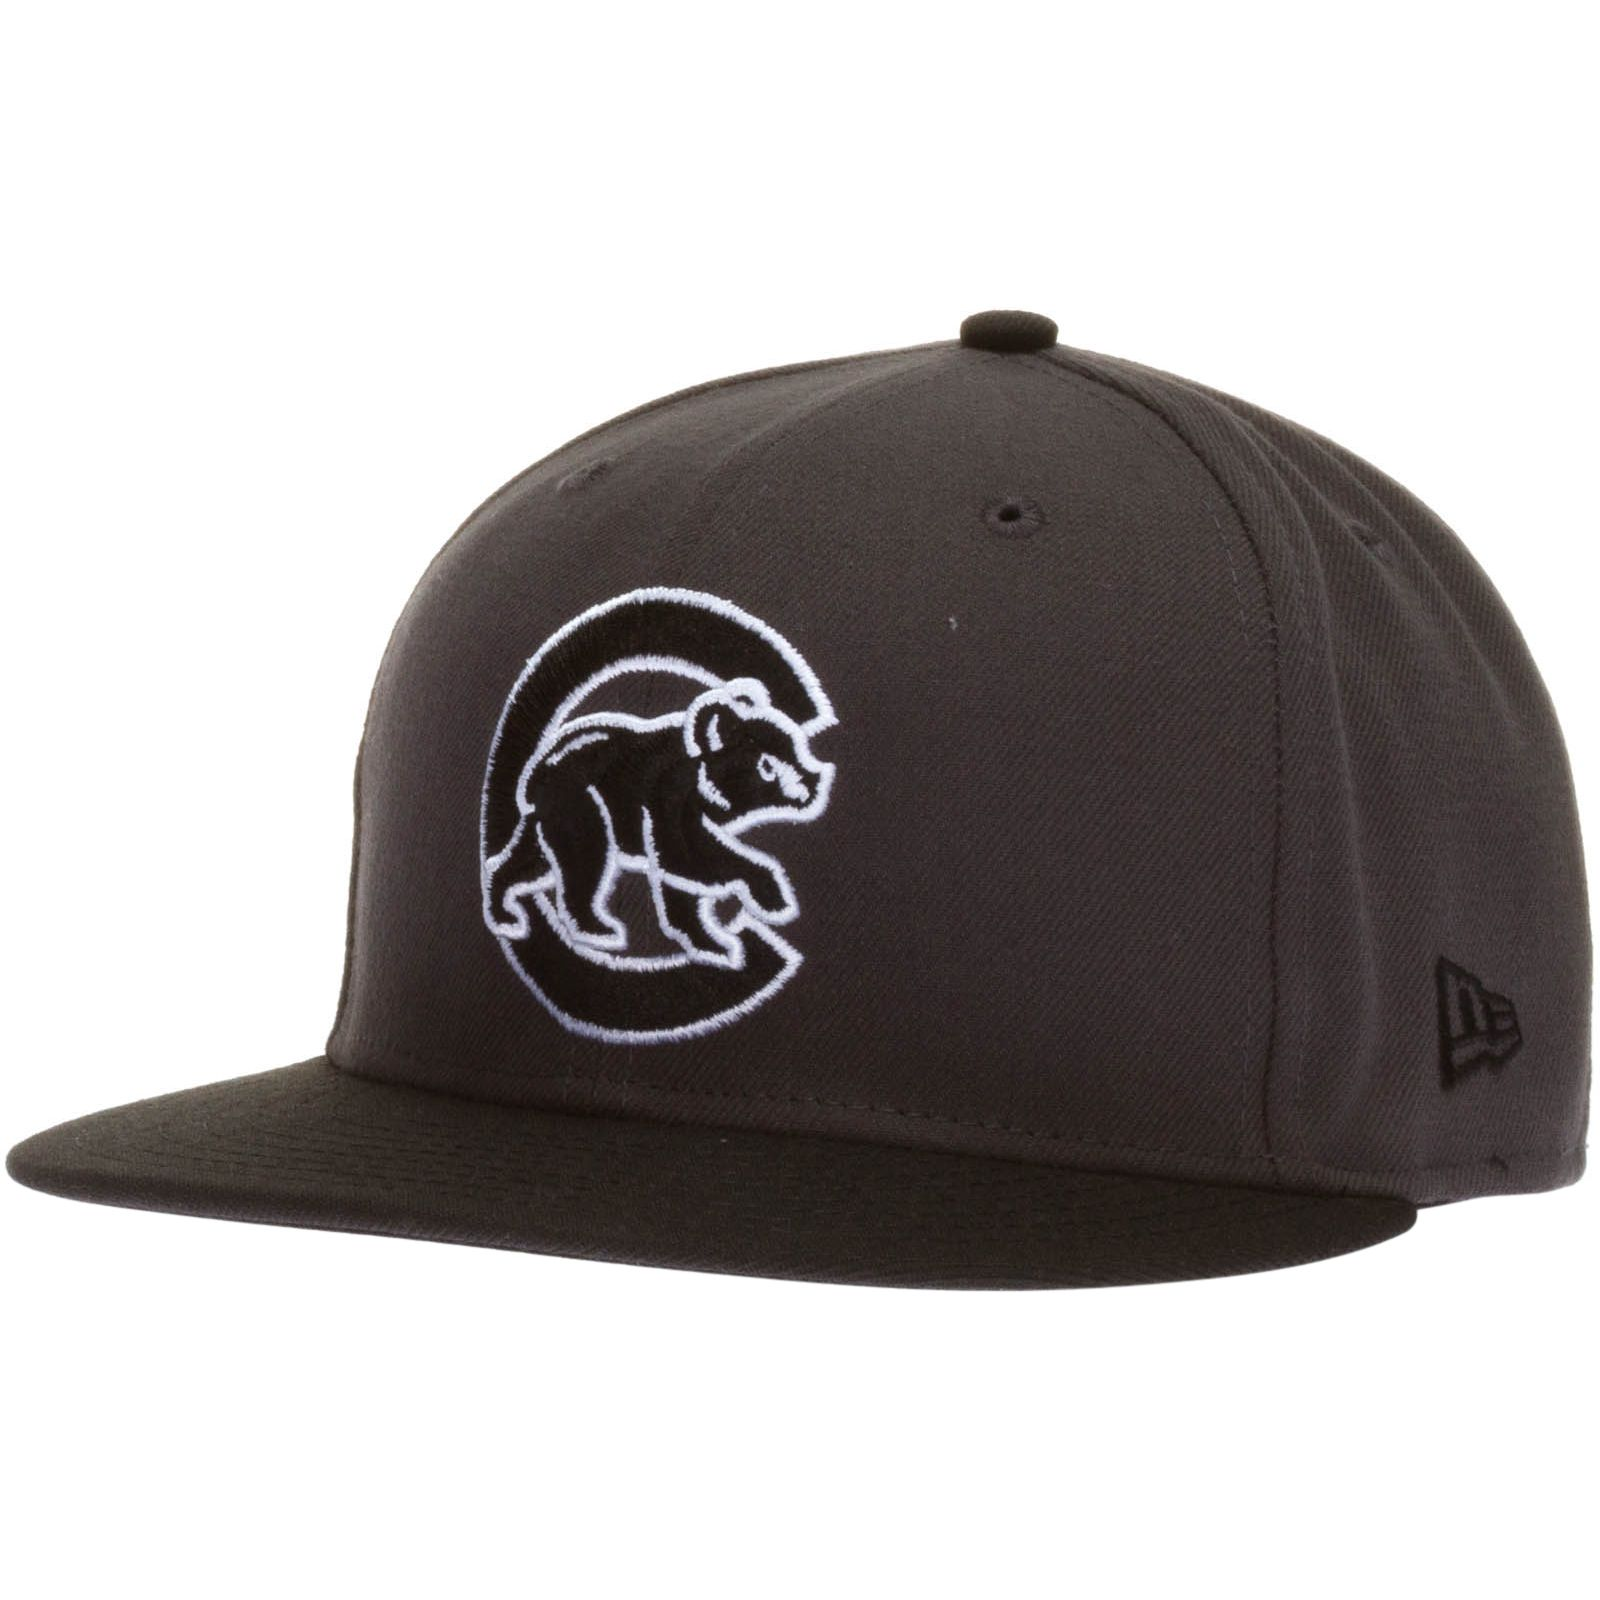 Chicago Cubs Grey and Black Crawl Bear Flat Bill Fitted Hat by New Era   Chicago  Cubs  ChicagoCubs 28a2776d57a